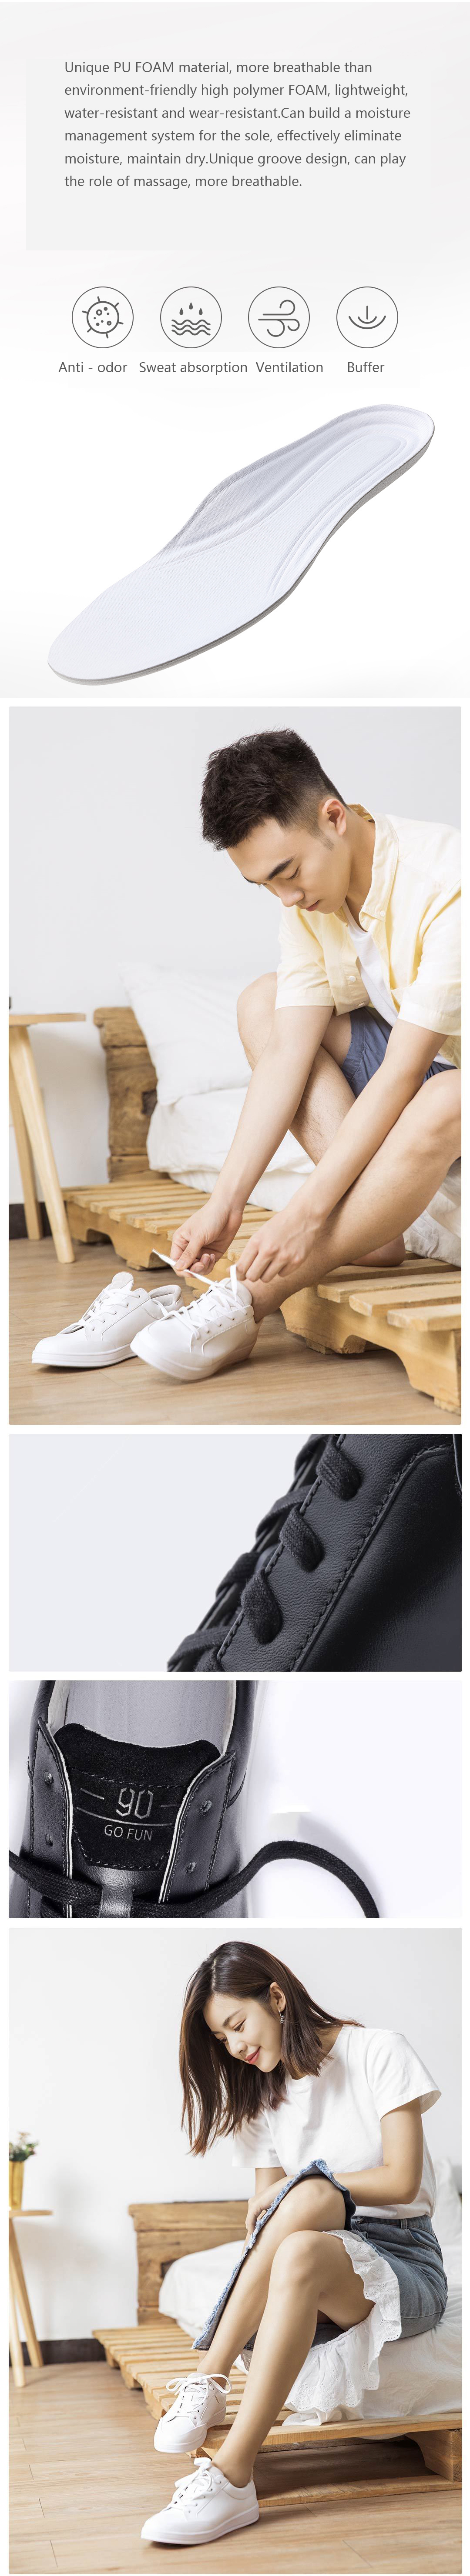 XIAOMI 90 FUN Men Leisure Genuine Sport Lace-up Leather Breathable Casual Board Shoes Sneakers